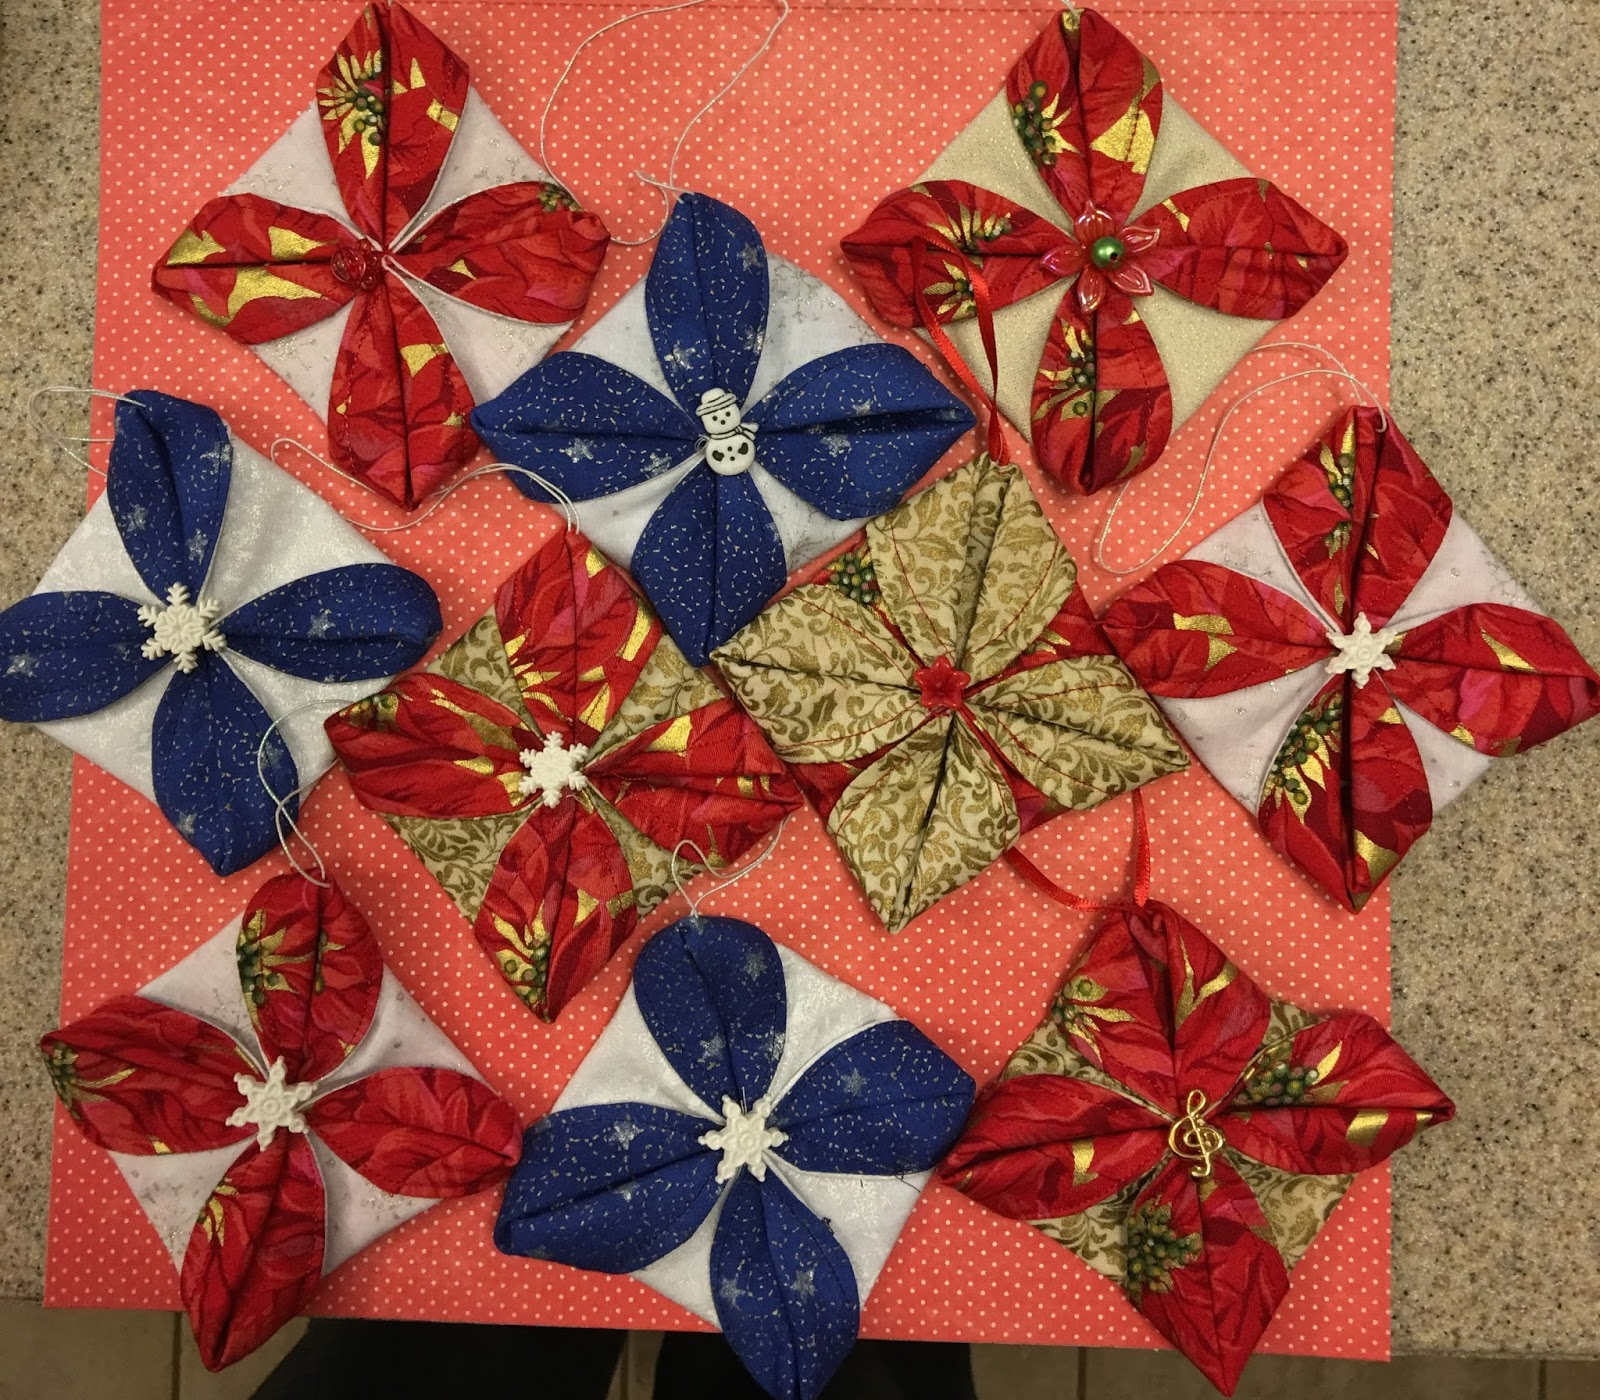 Folded fabric christmas ornaments patterns - I Saw The Instructions For Making These Folded Fabric Ornaments On You Tube The Video Is By Someone With The Unlikely Name Of Crouton Crackerjacks